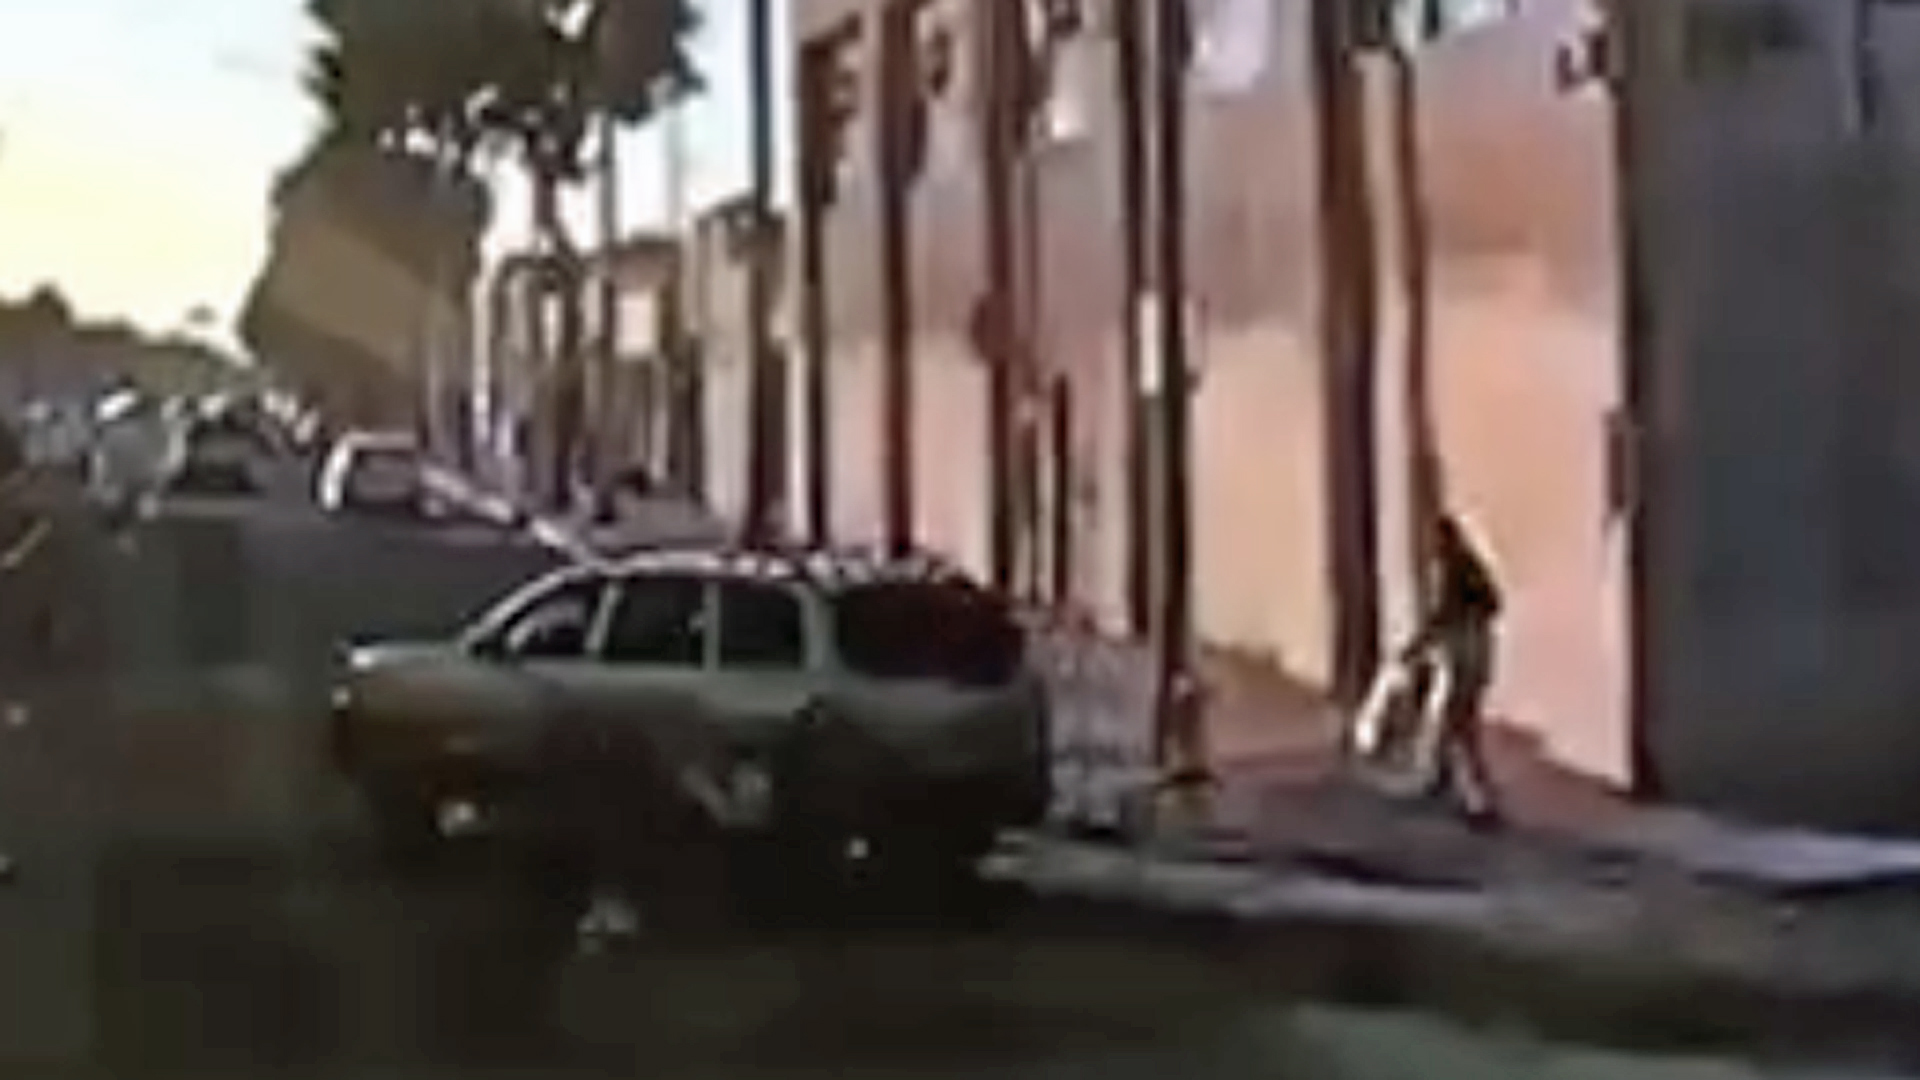 An SUV involved in a hit-and-run crash in the Fashion District area of downtown Los Angeles is shown in a surveillance still released by the LAPD on Sept. 18, 2019.